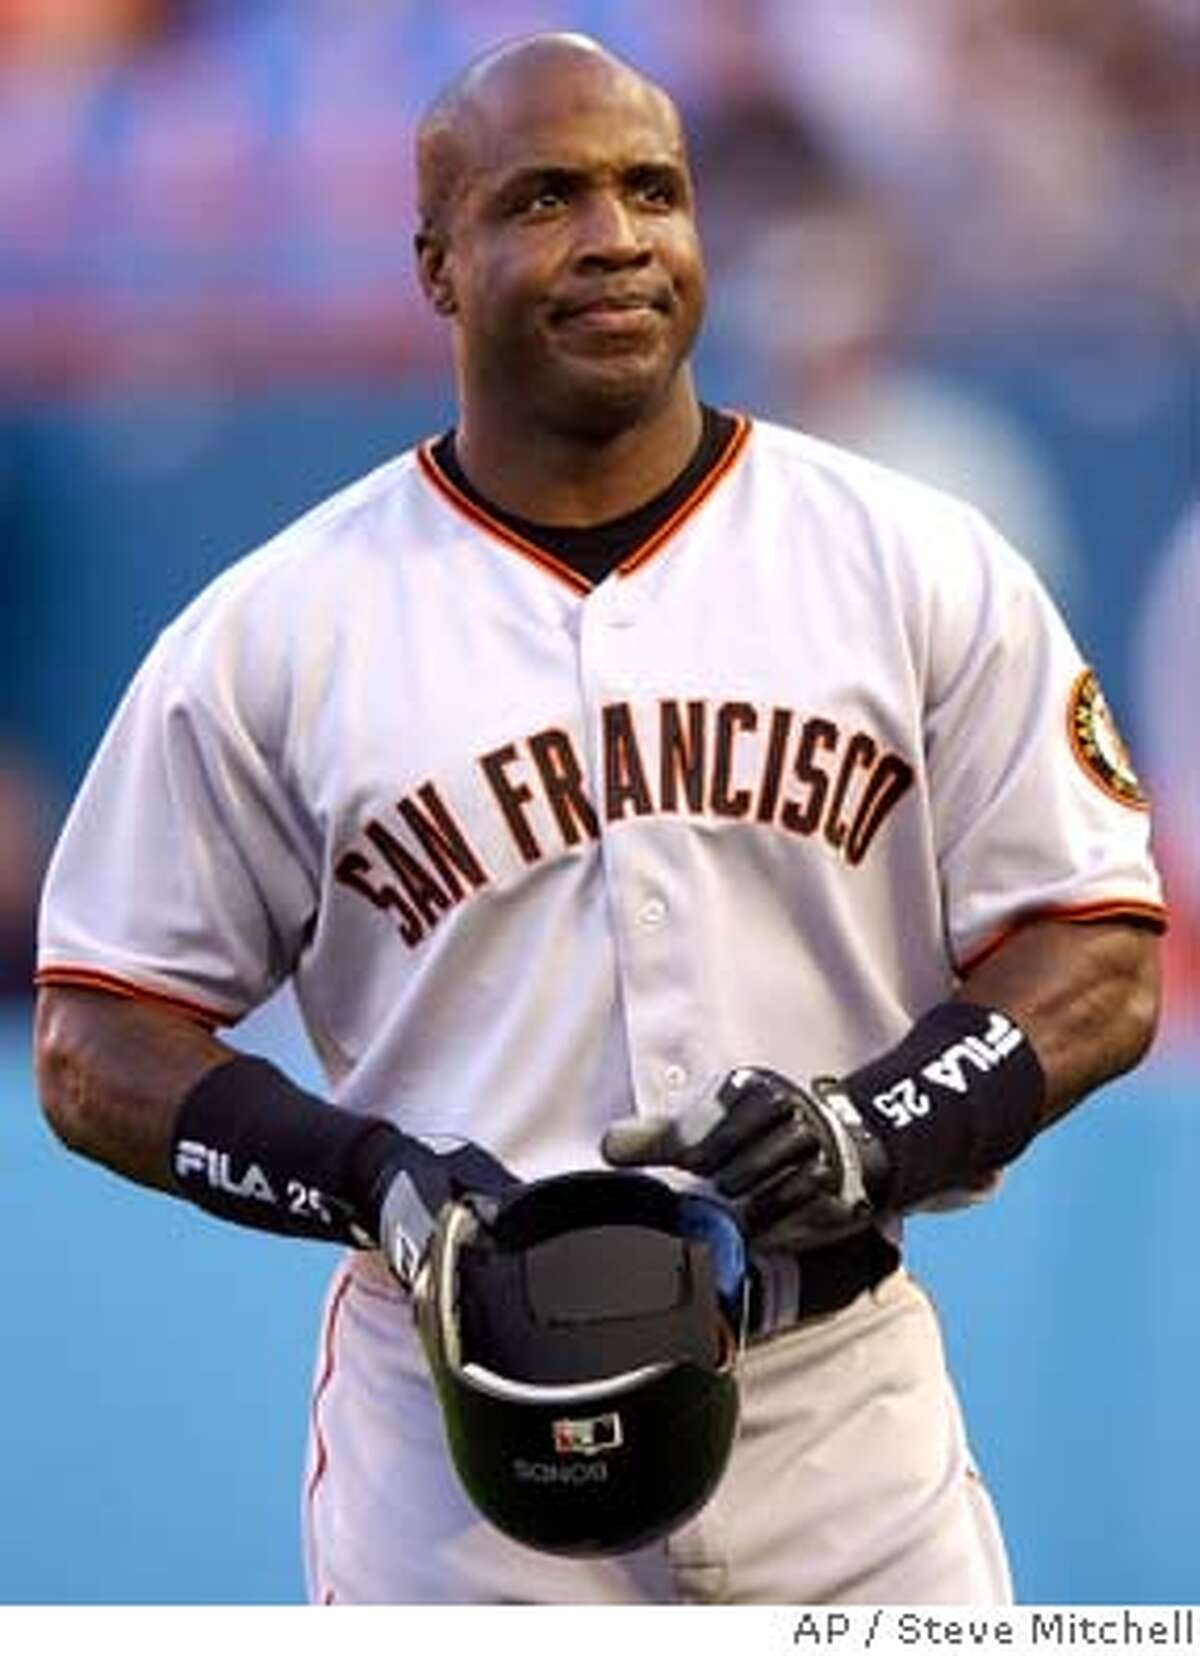 San Francico Giants Barry Bonds react after flying out during the first inning against the Florida Marlins Thursday, May 8, 2003, at Pro Player Stadium in Miami. (AP Photo/Steve Mitchell)